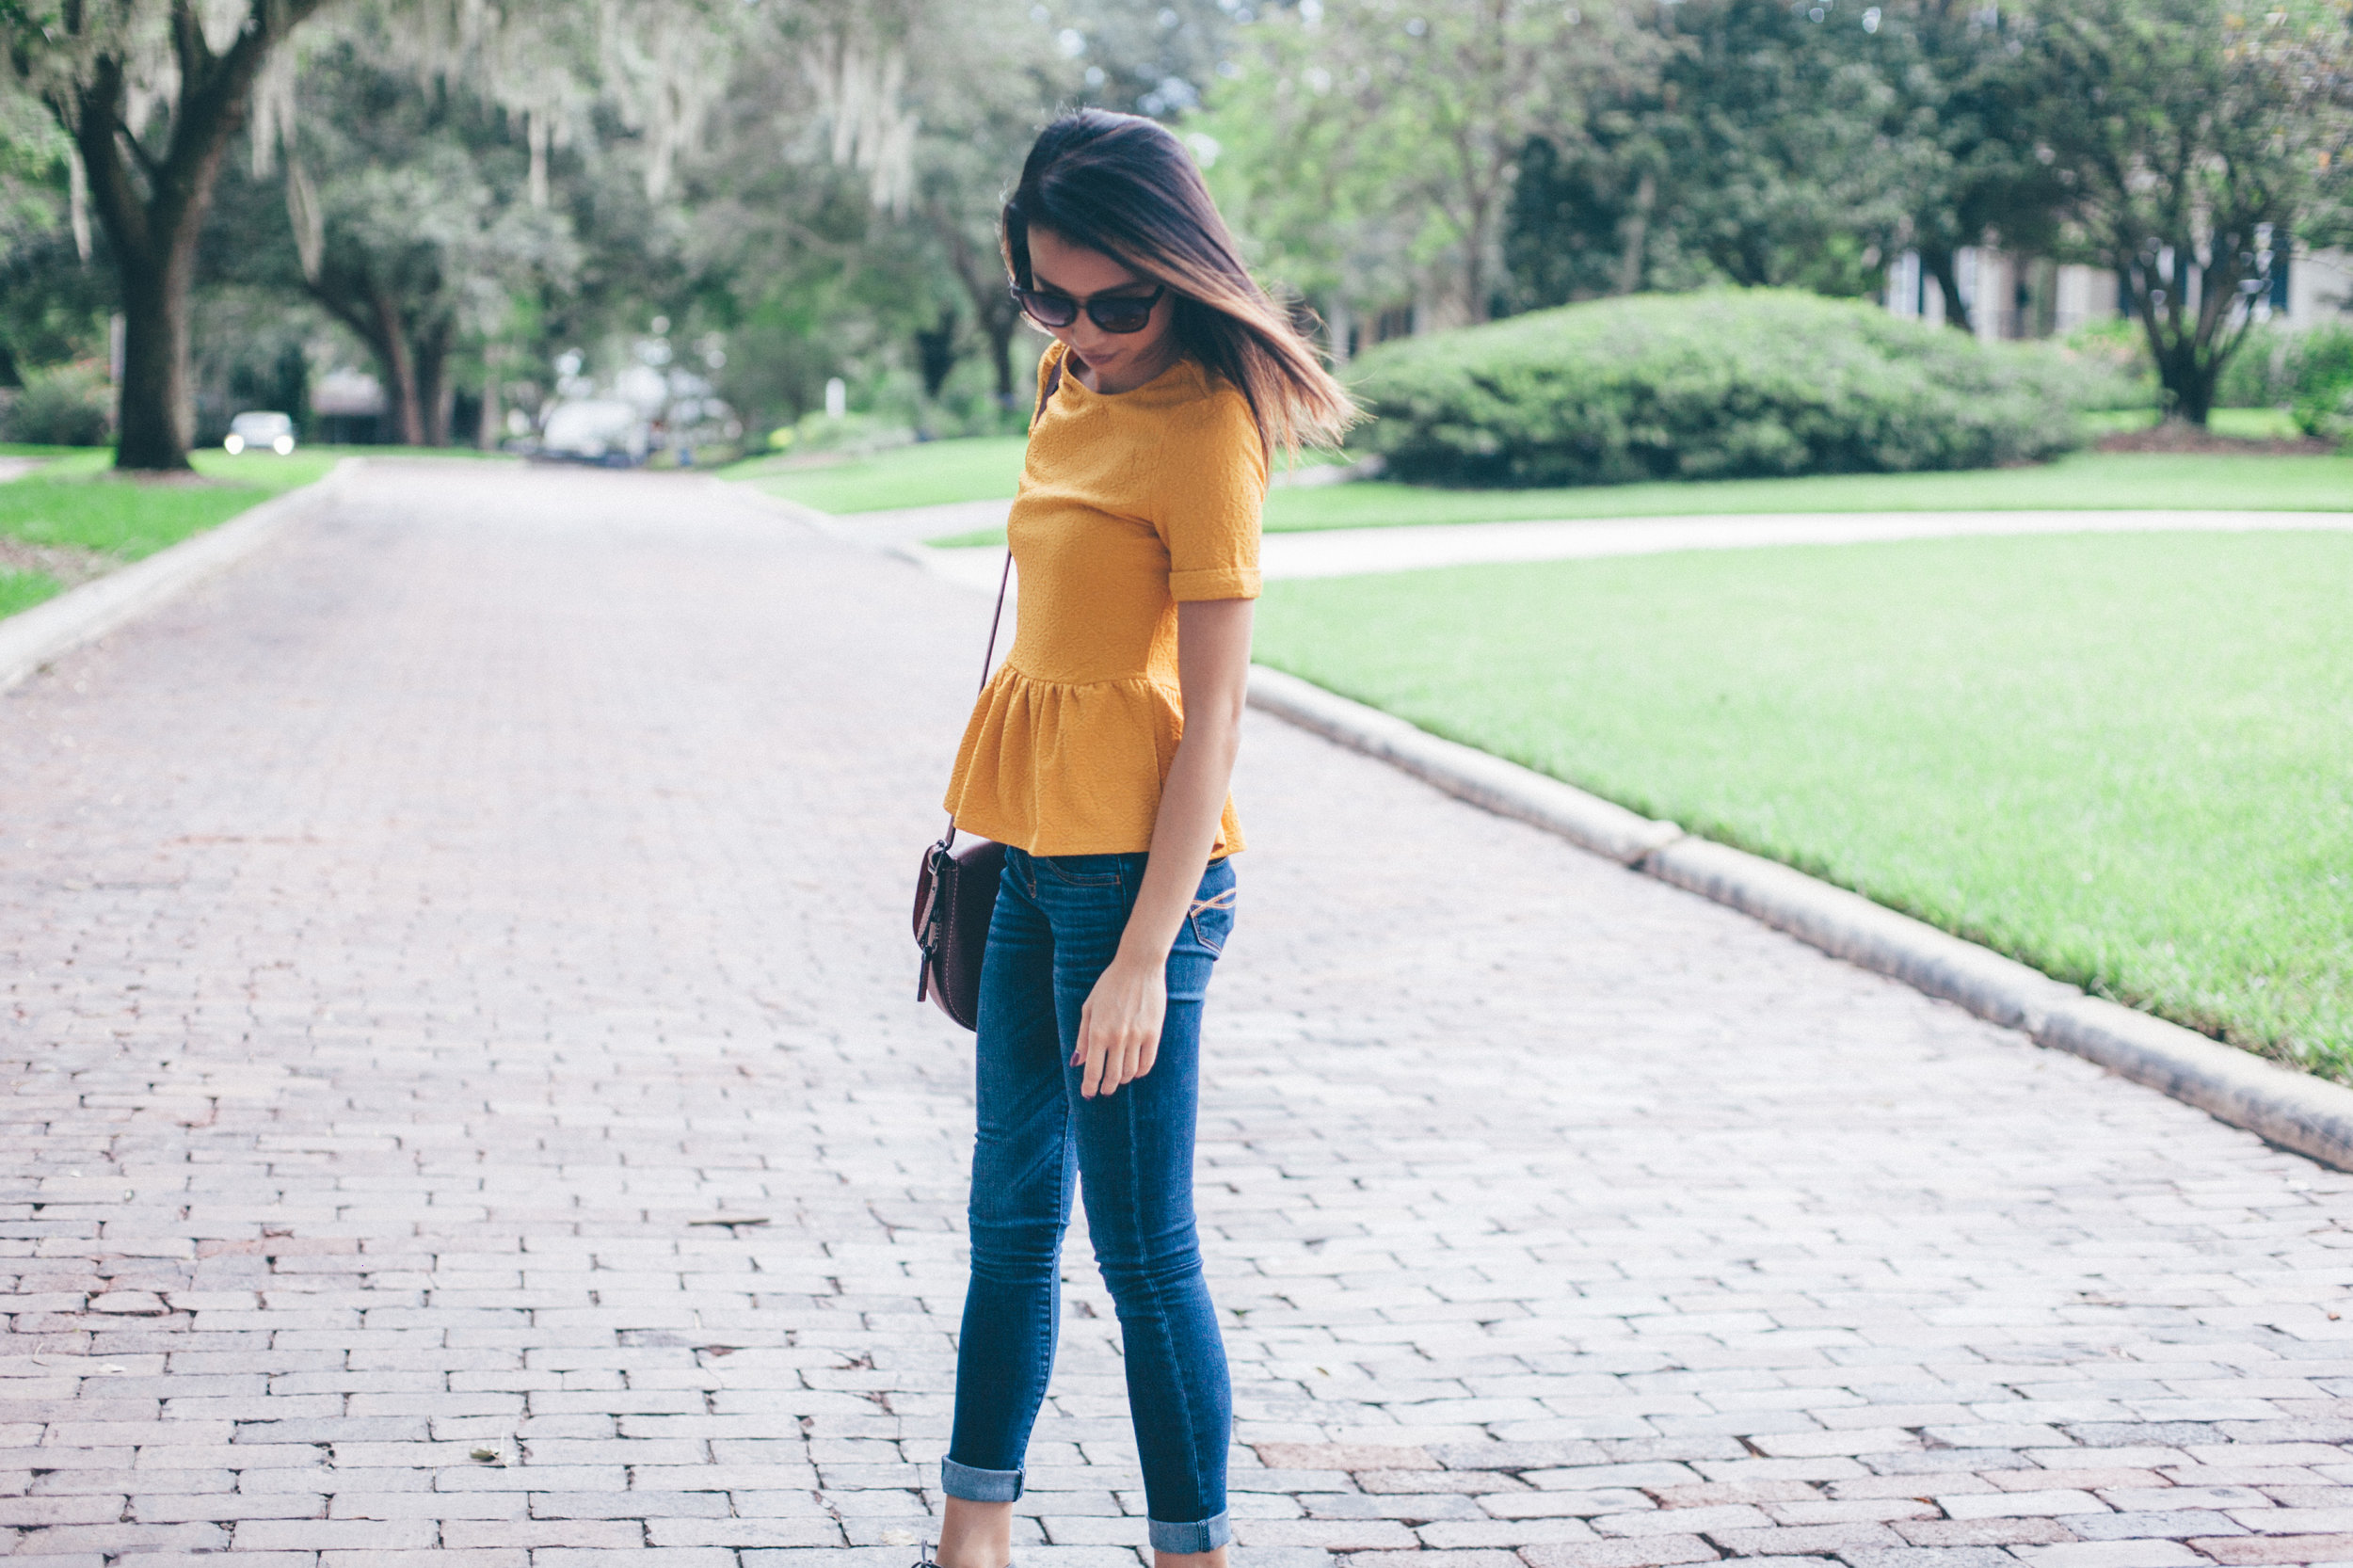 This Jenn Girl - Shein Yellow Peplum 1